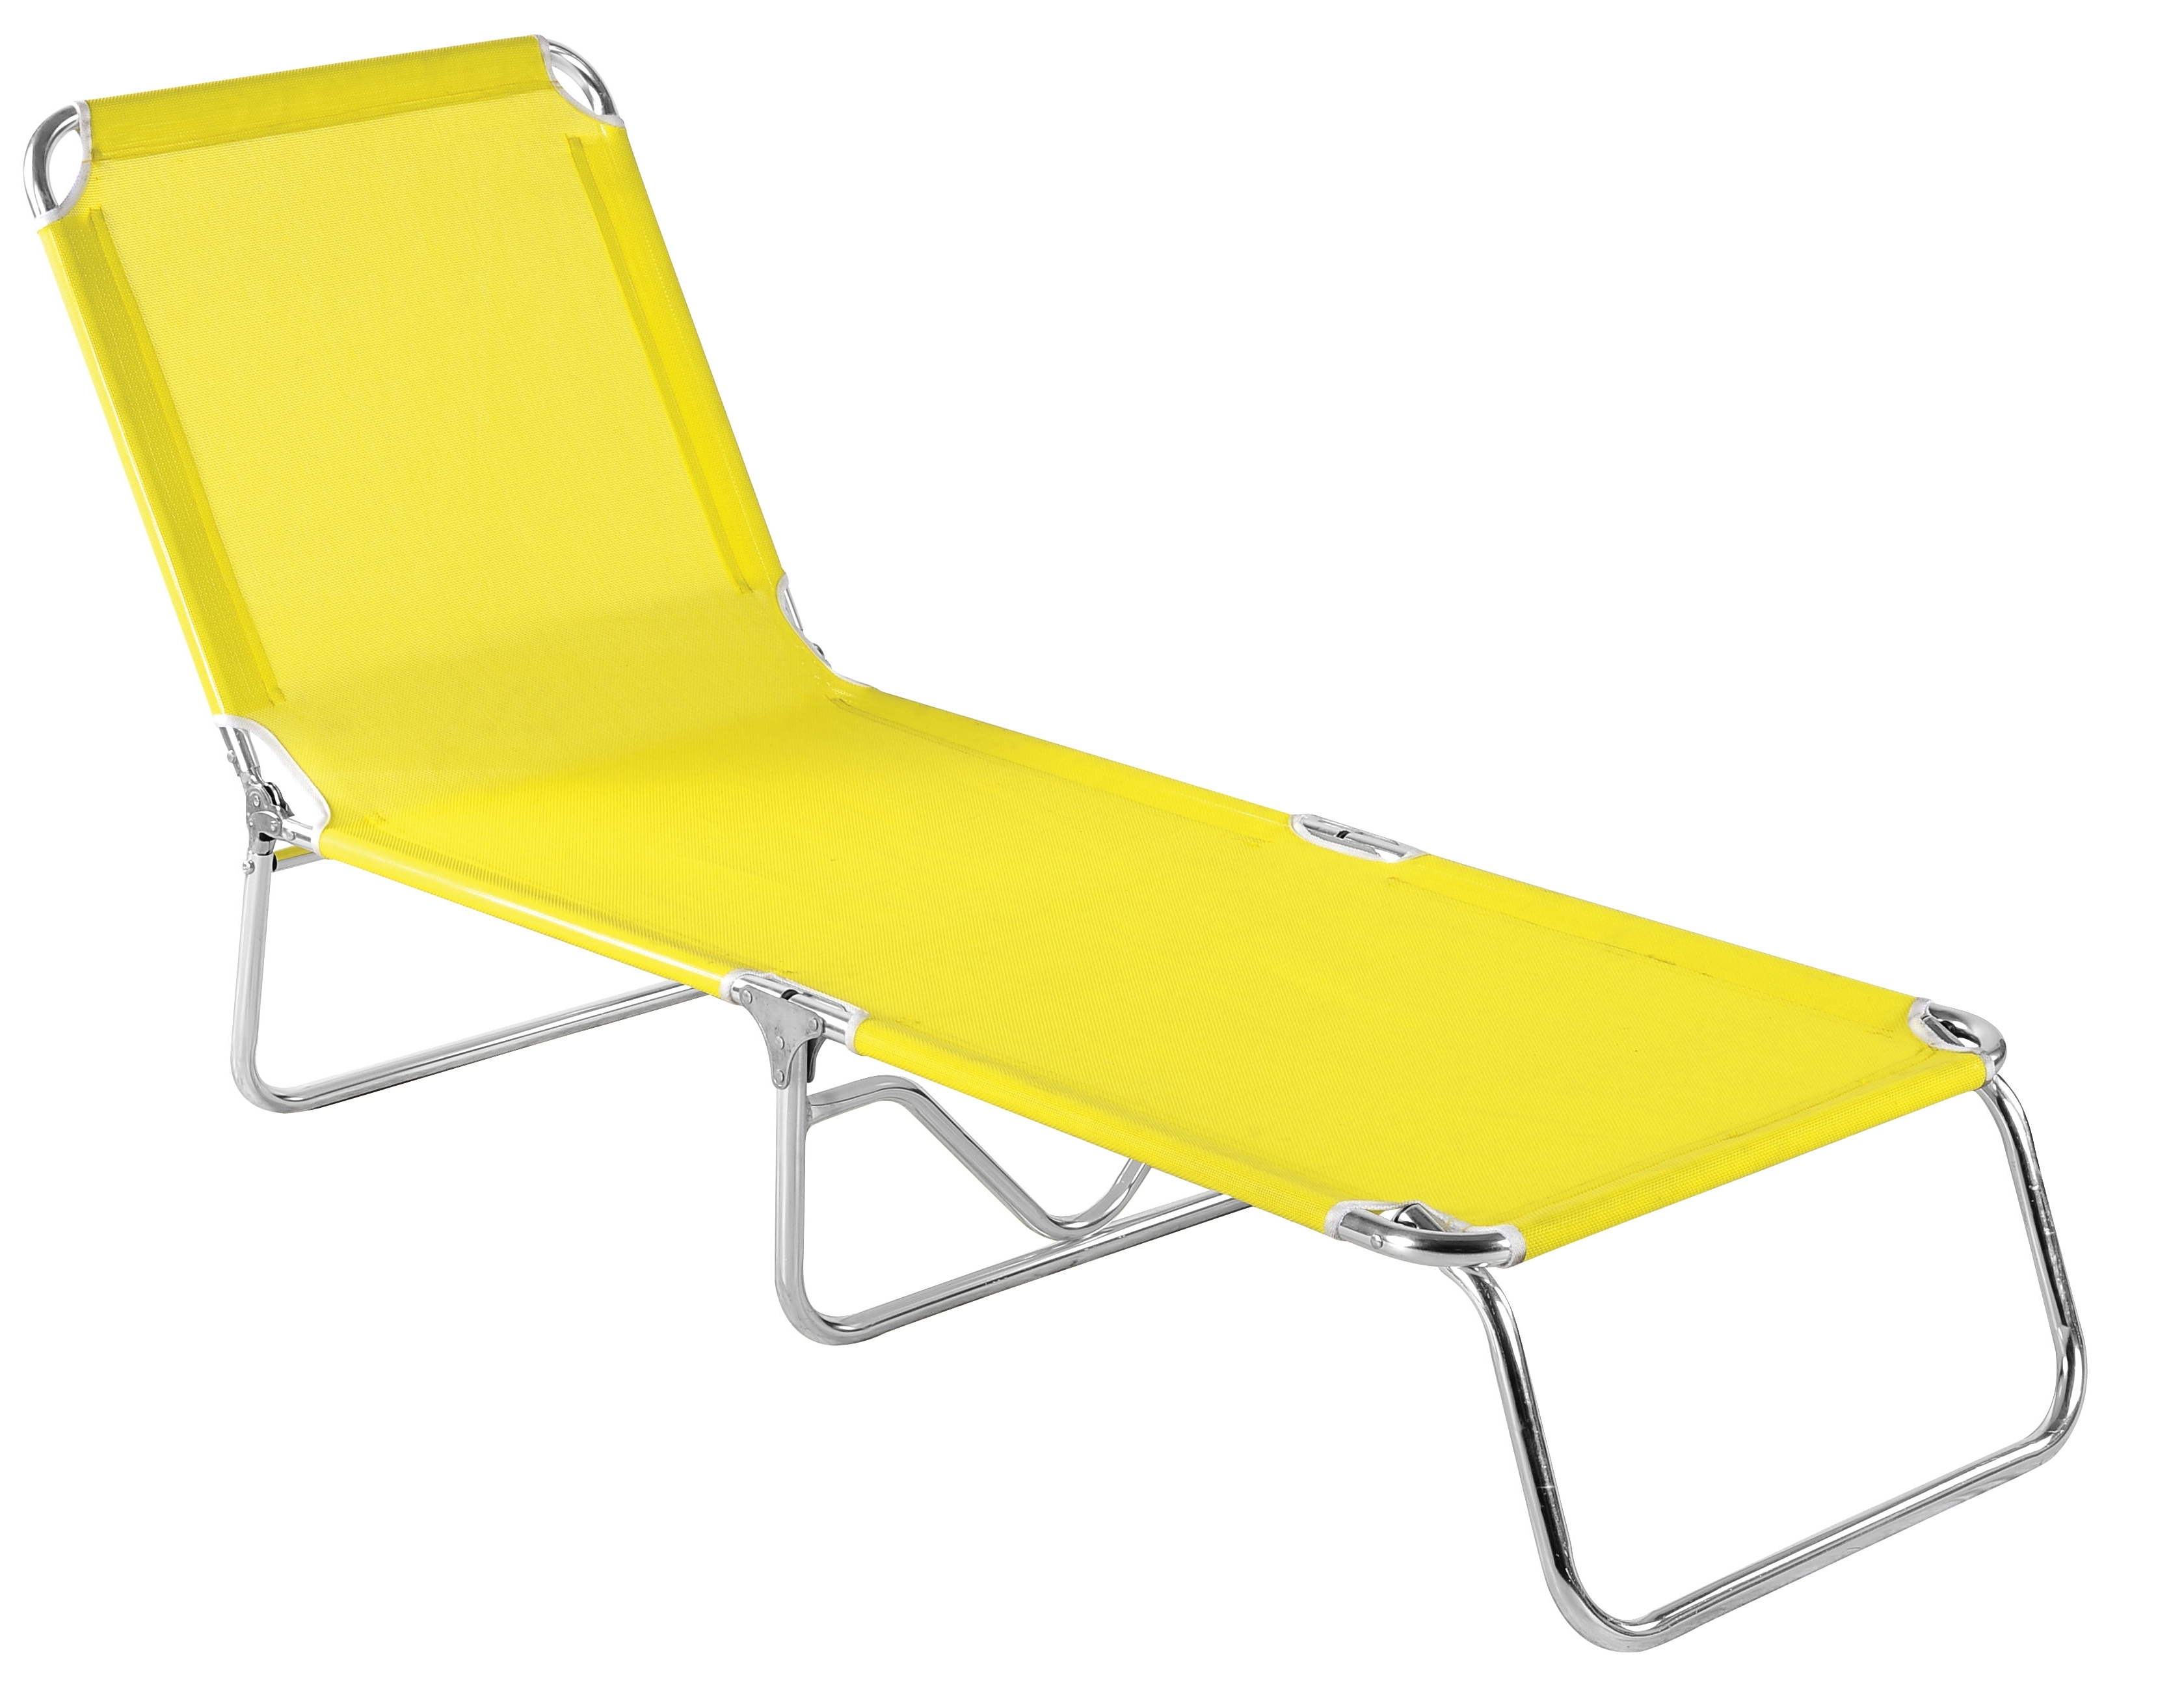 Jelly Chaise Lounge Chairs With Most Up To Date Folding Jelly Chaise Lounge Chair • Lounge Chairs Ideas (Gallery 1 of 15)